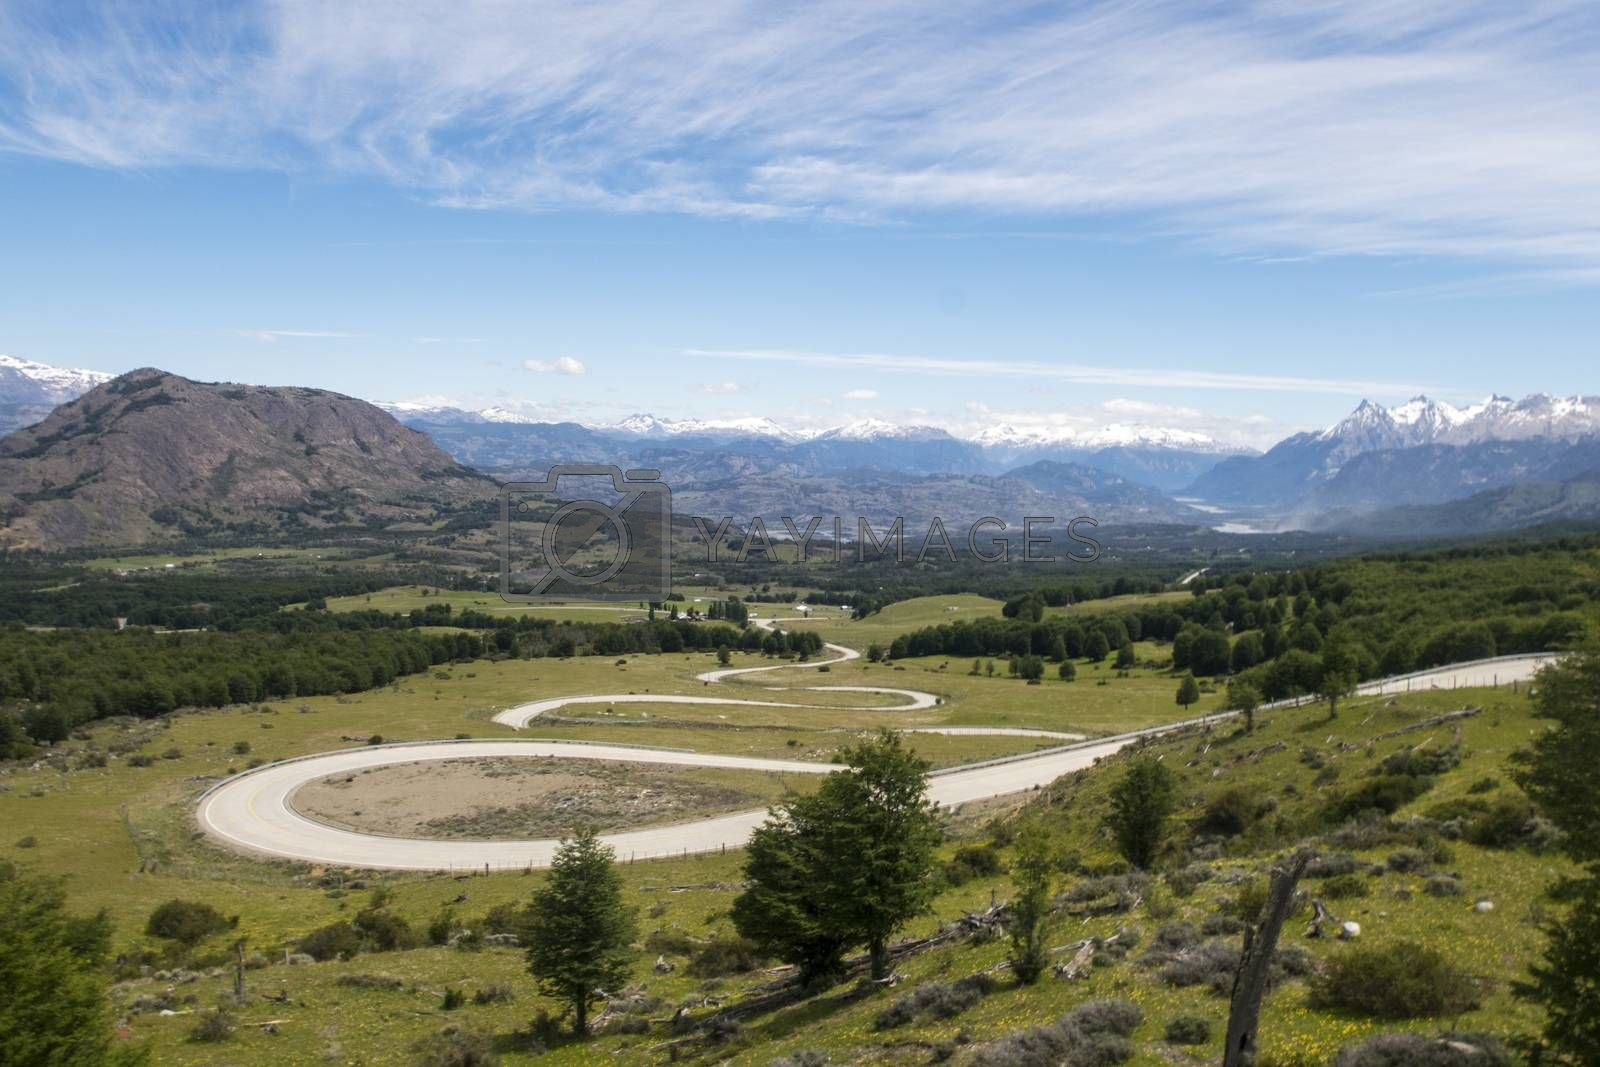 devils bends on the carretera austral  by bernjuer